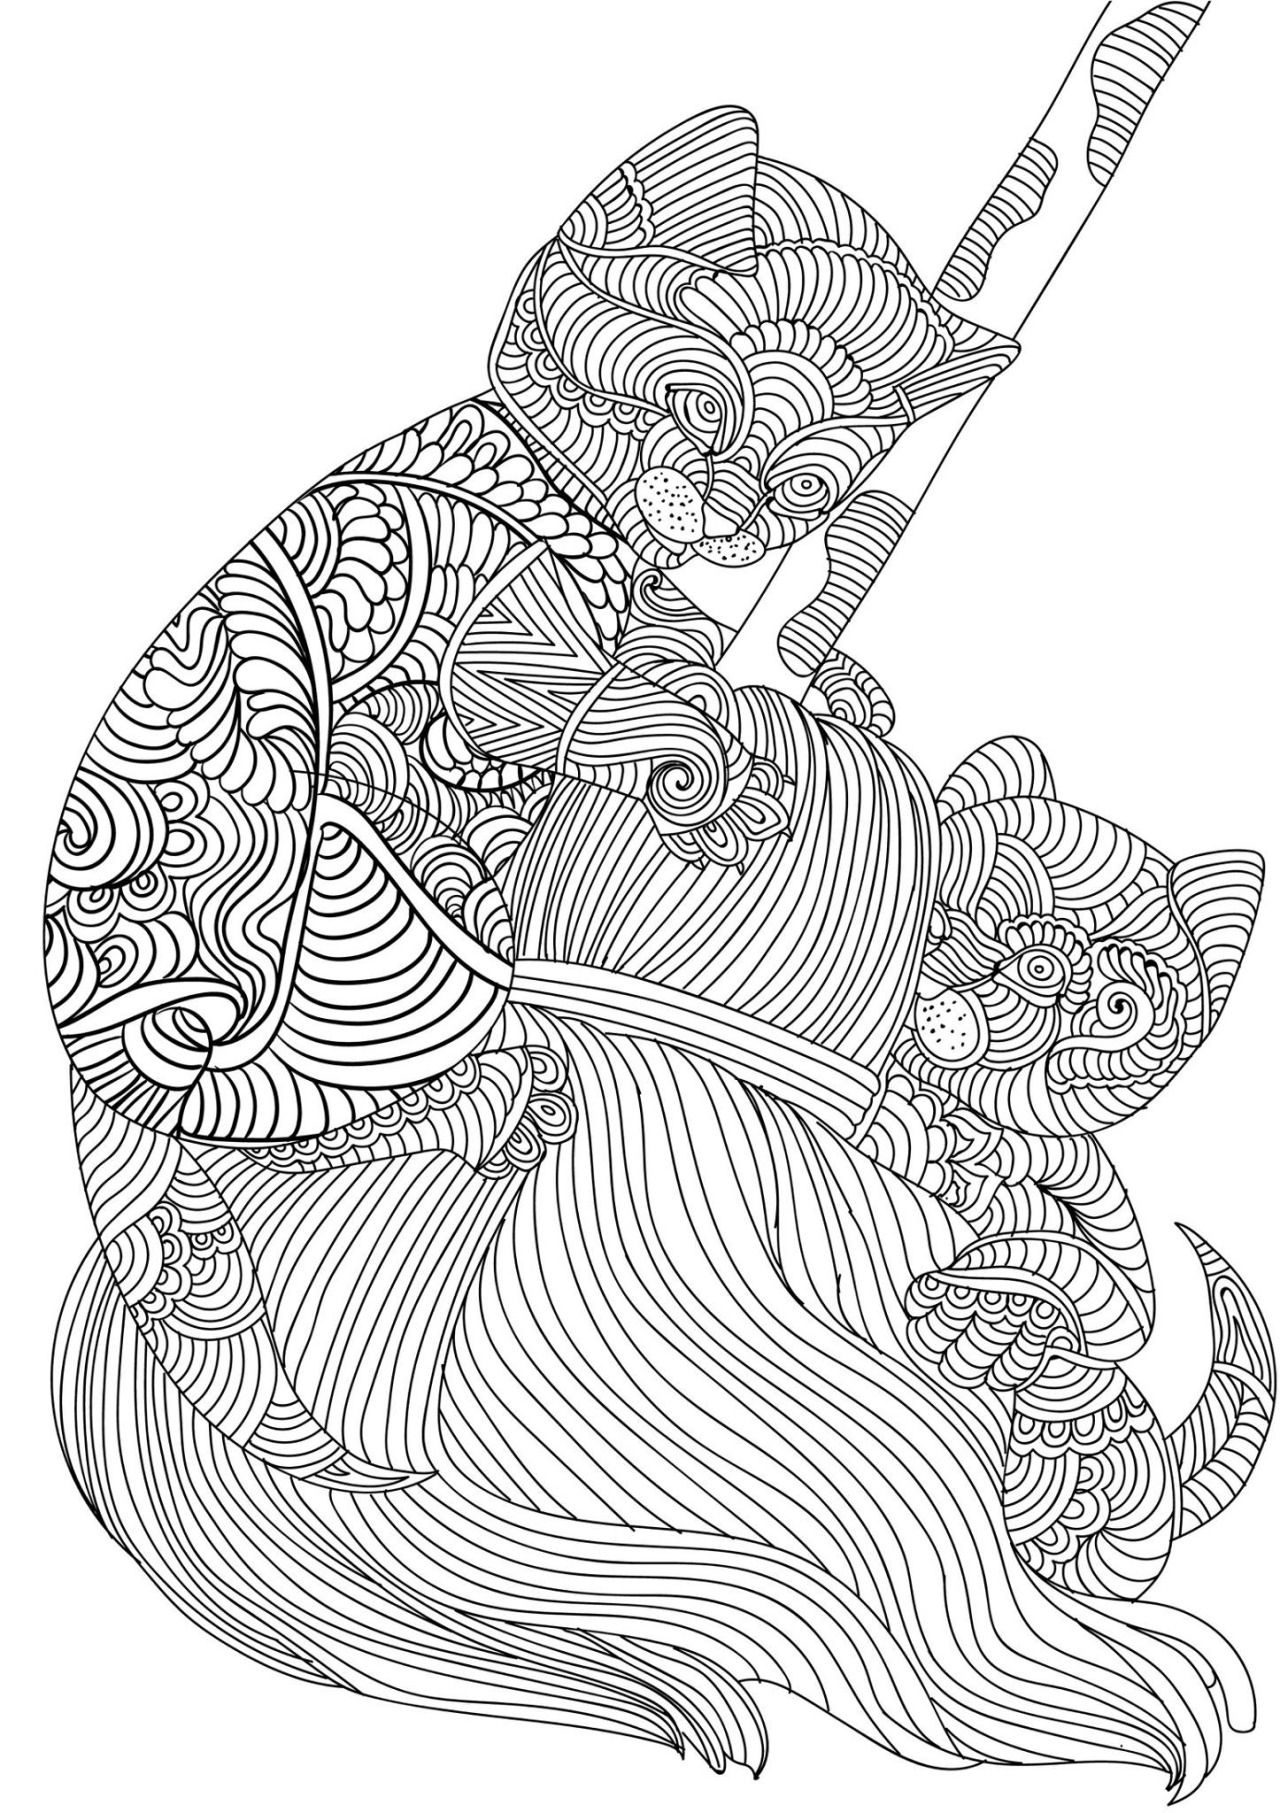 Stress relieving coloring - An Image Straight Out Of Our Upcoming Adult Coloring Book